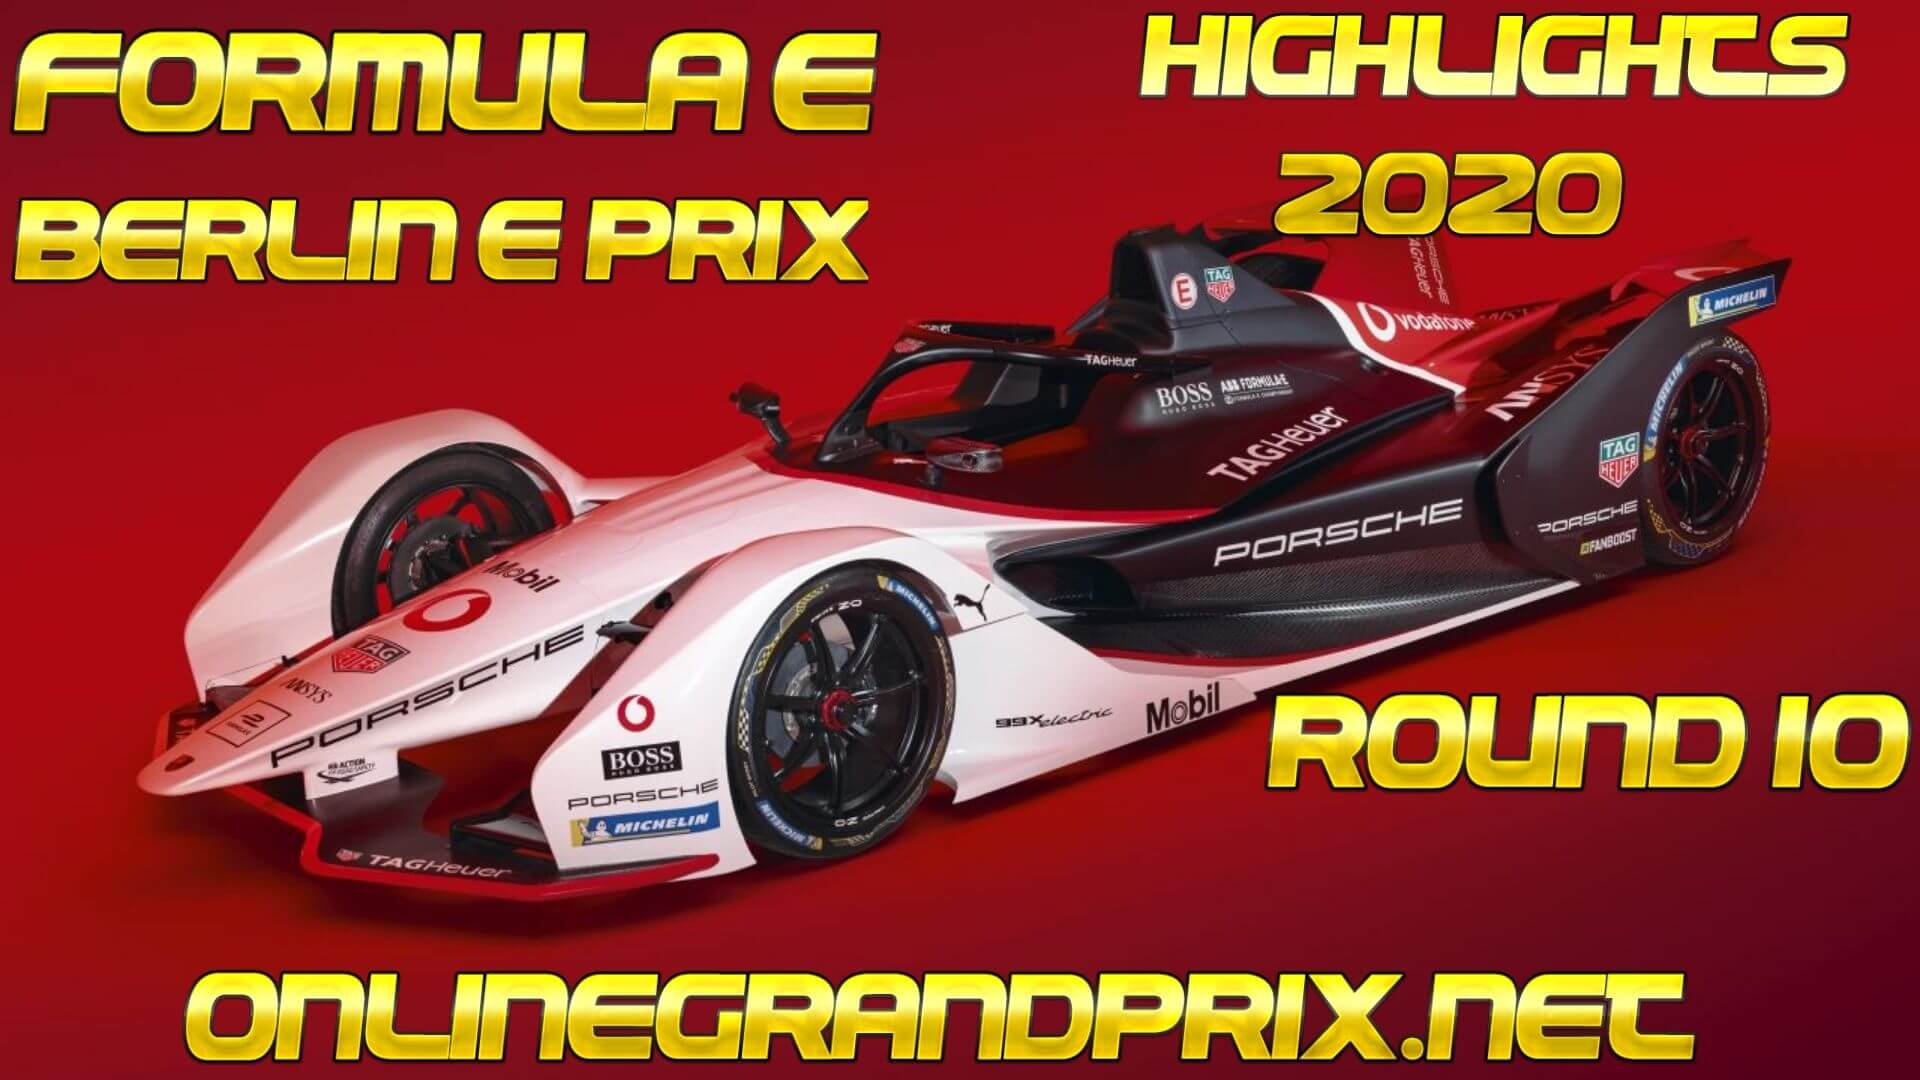 Berlin E Prix Formula E Highlights 2020 Round 10